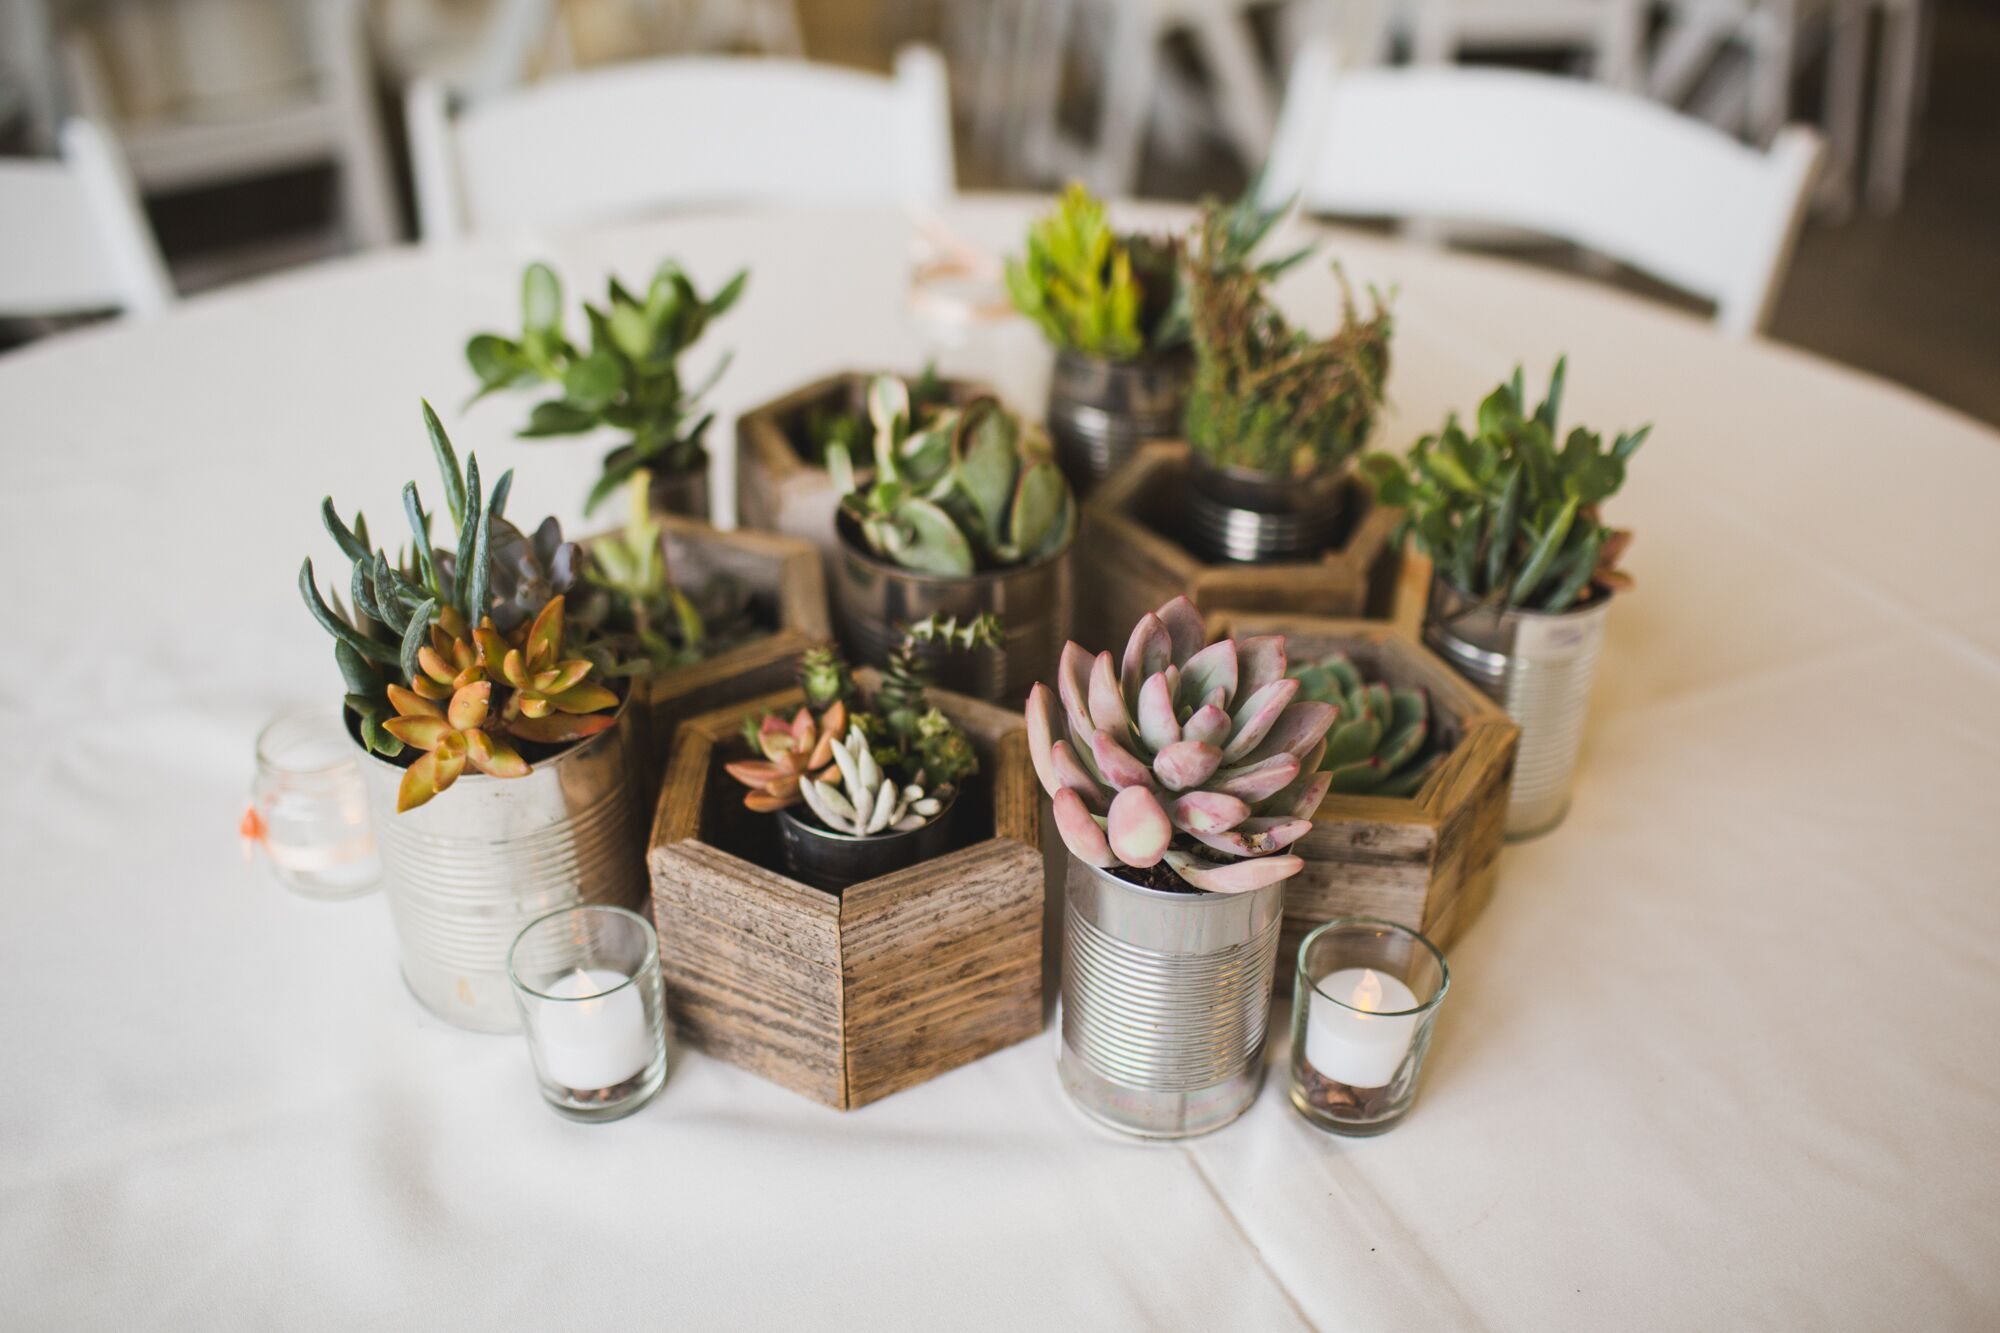 Diy wedding centerpieces diy succulent centerpieces in recycled planters solutioingenieria Gallery